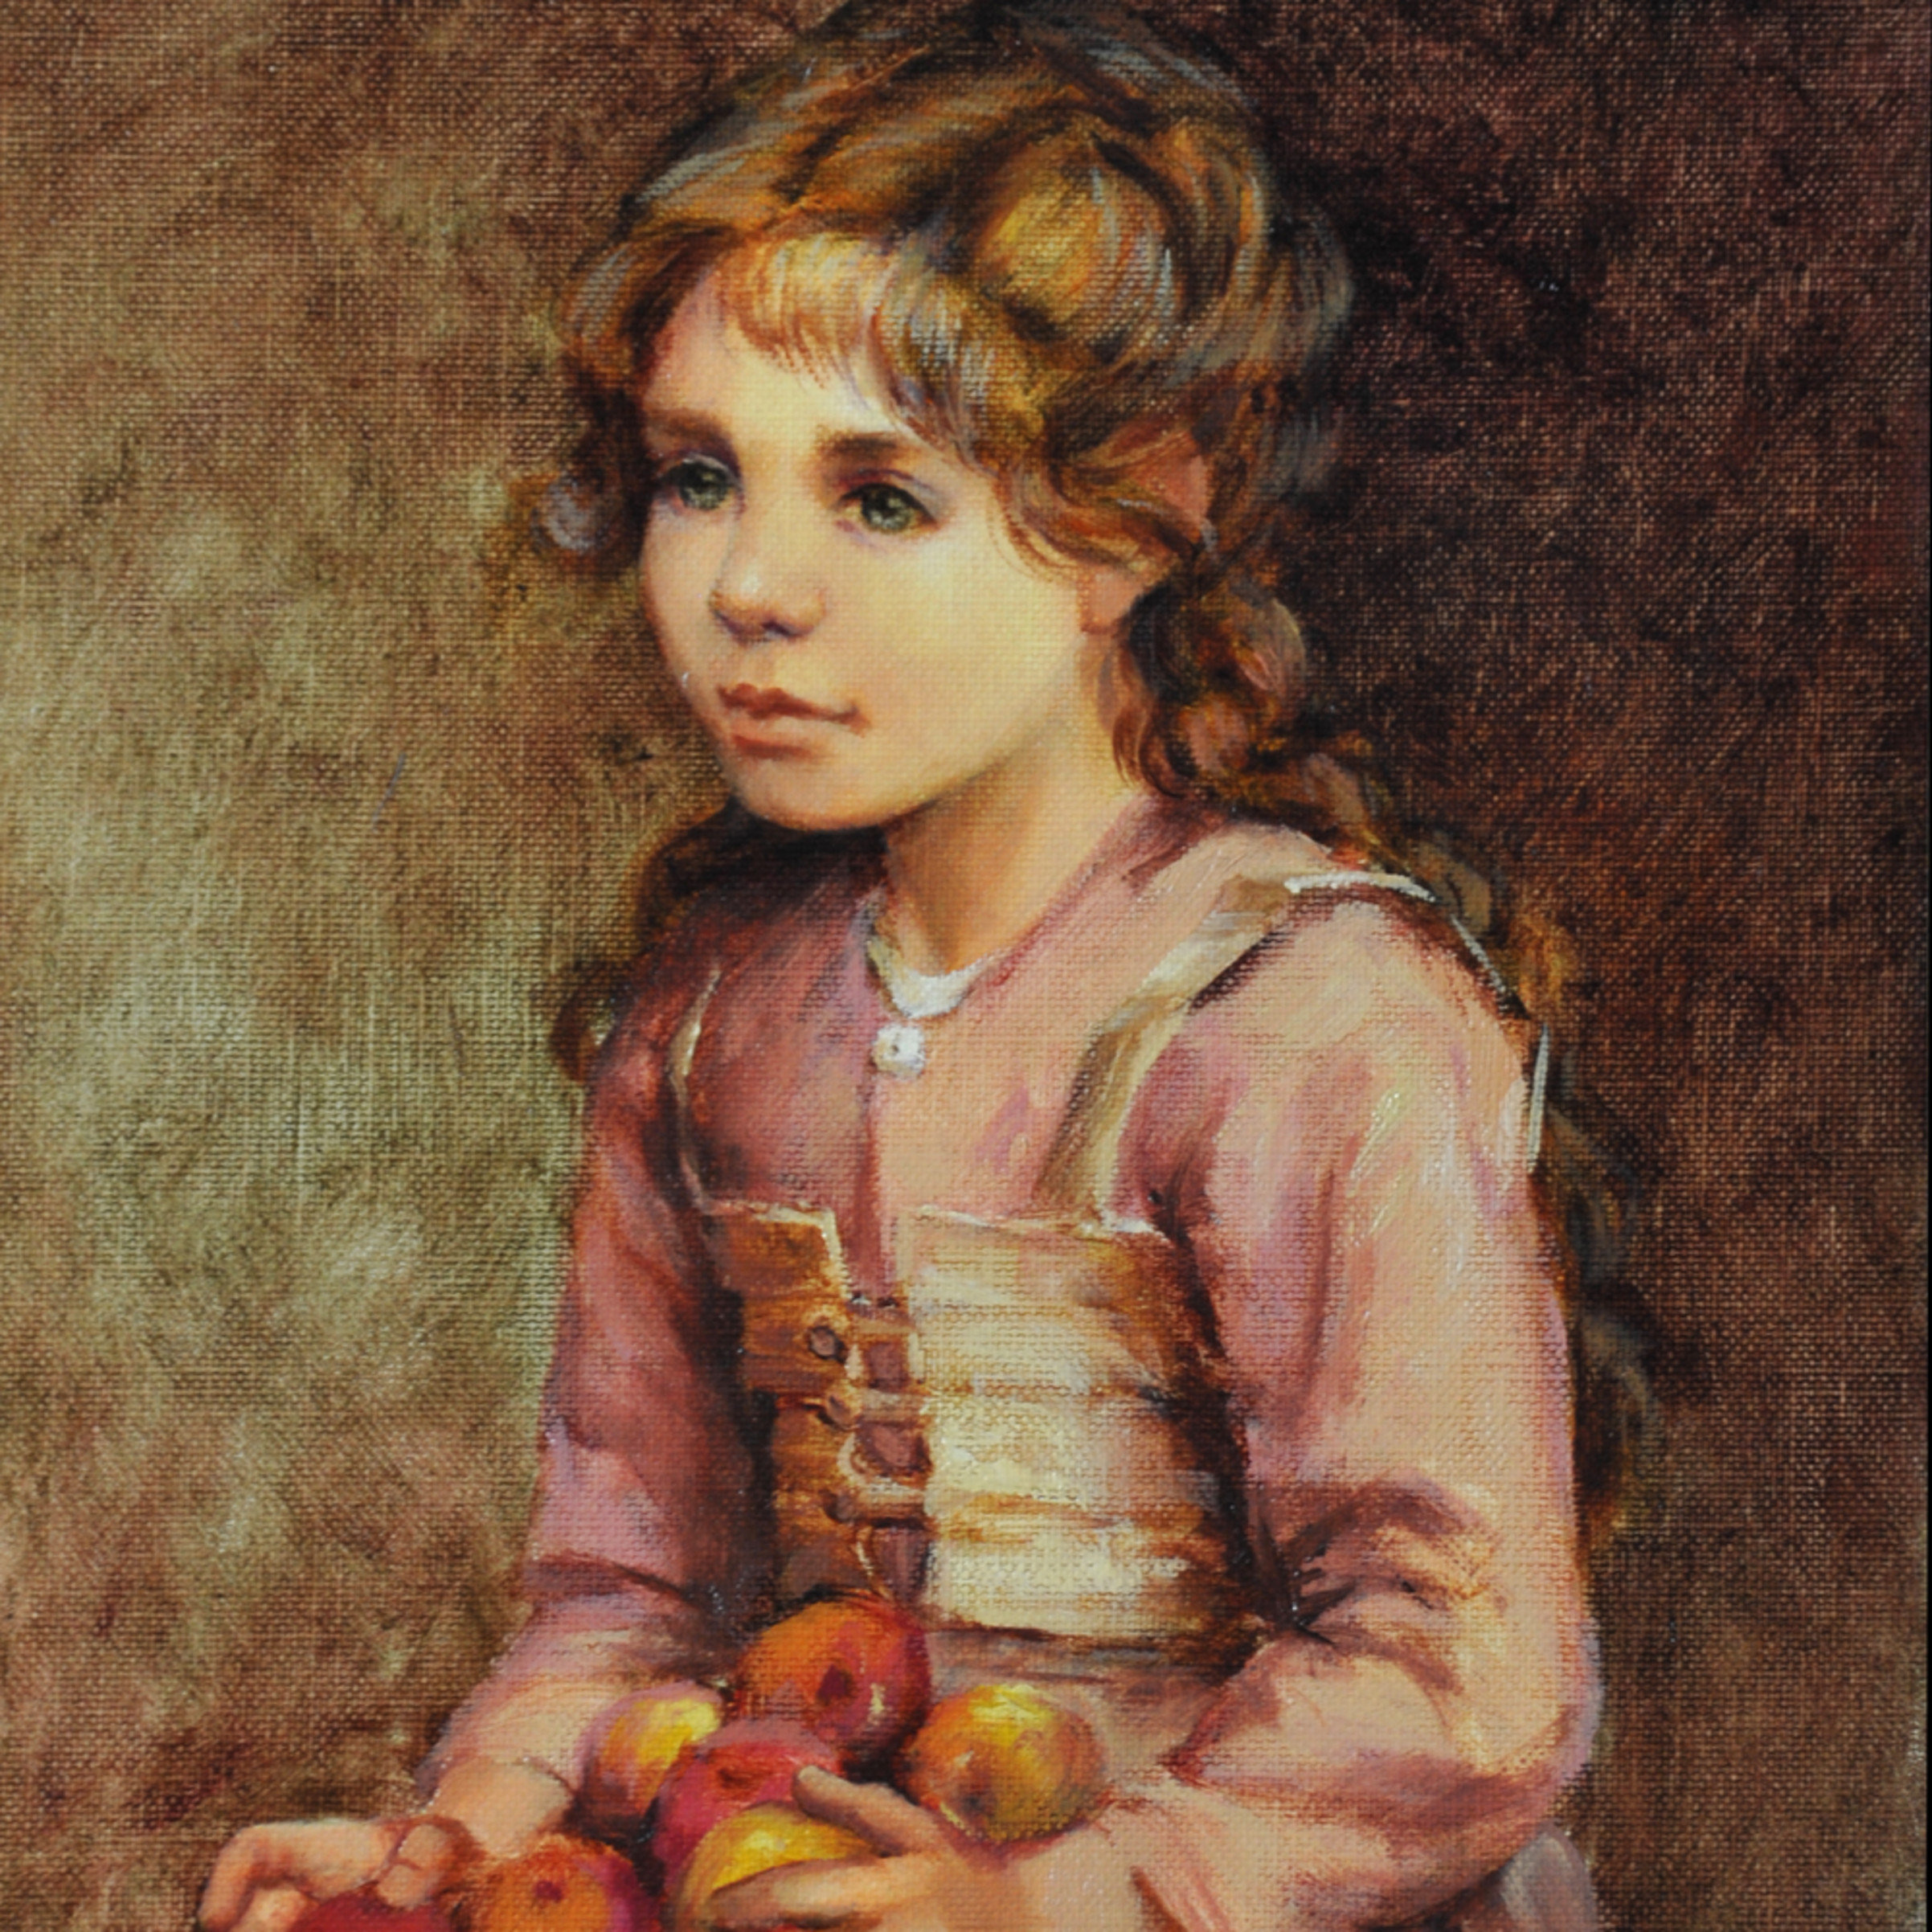 Abigail with apples 2 print j5itgh